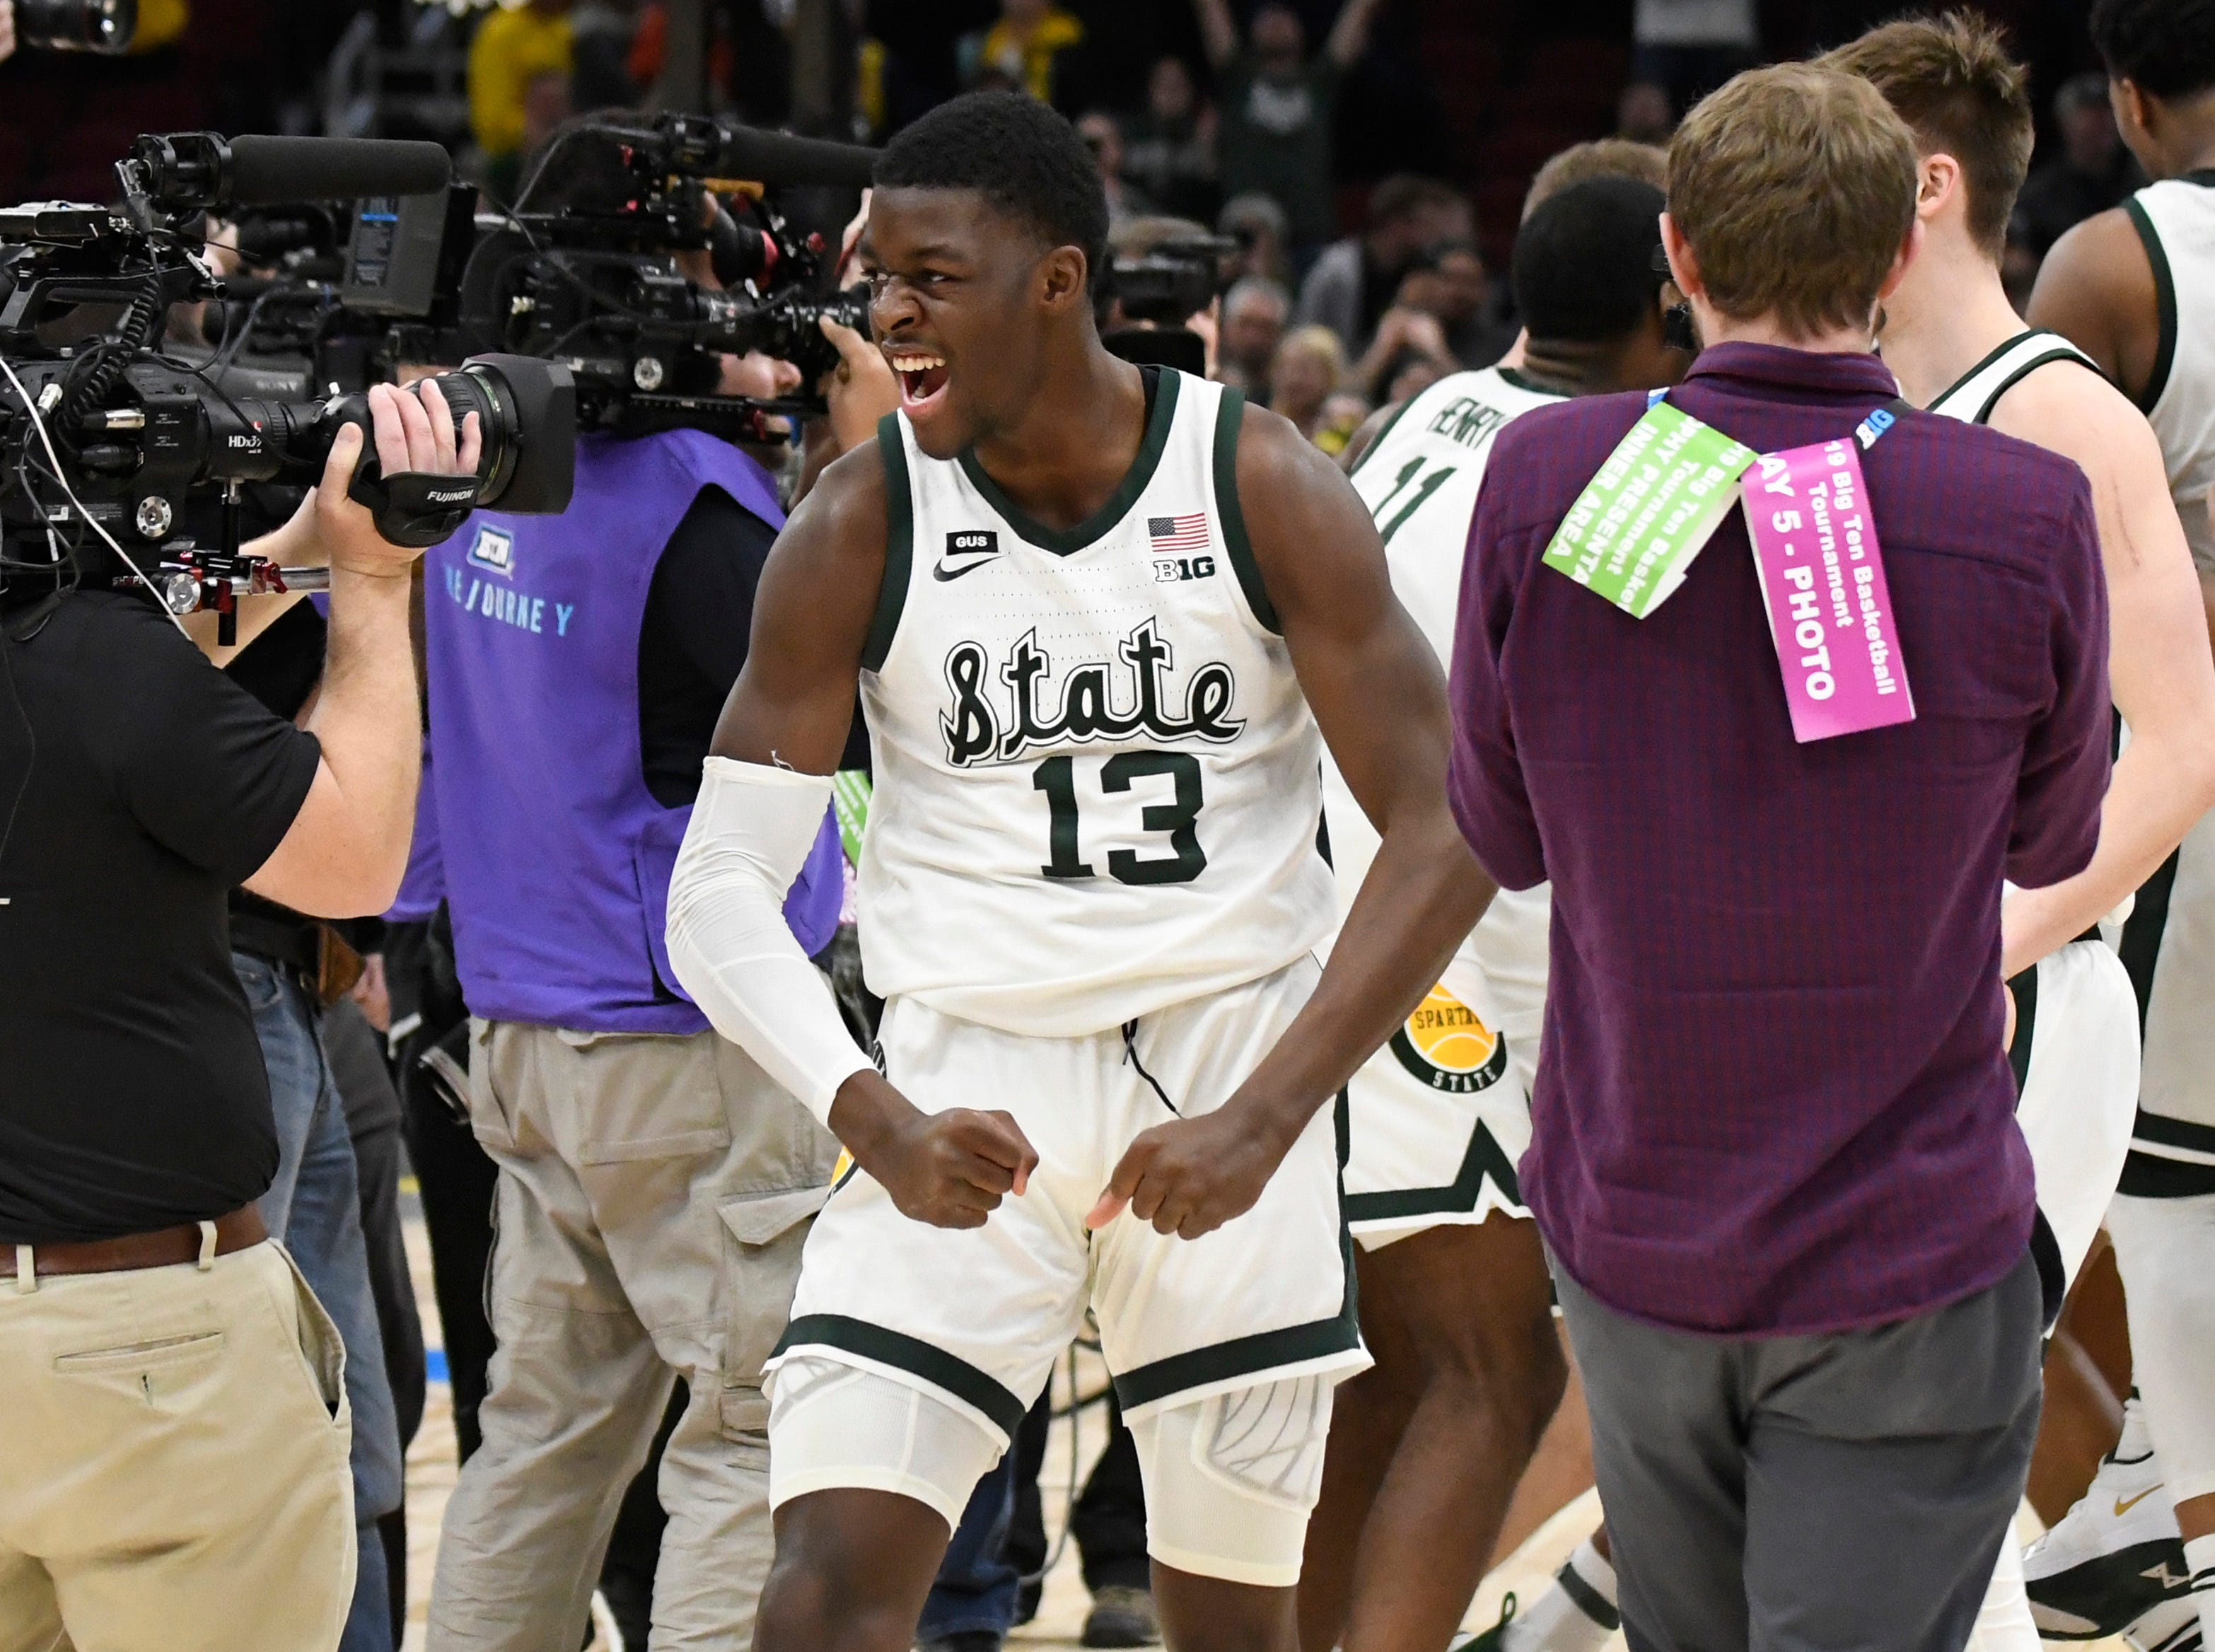 Mar 17, 2019; Chicago, IL, USA; Michigan State Spartans forward Gabe Brown (13) celebrates their championship against the Michigan Wolverines in the Big Ten conference tournament at United Center. Mandatory Credit: David Banks-USA TODAY Sports